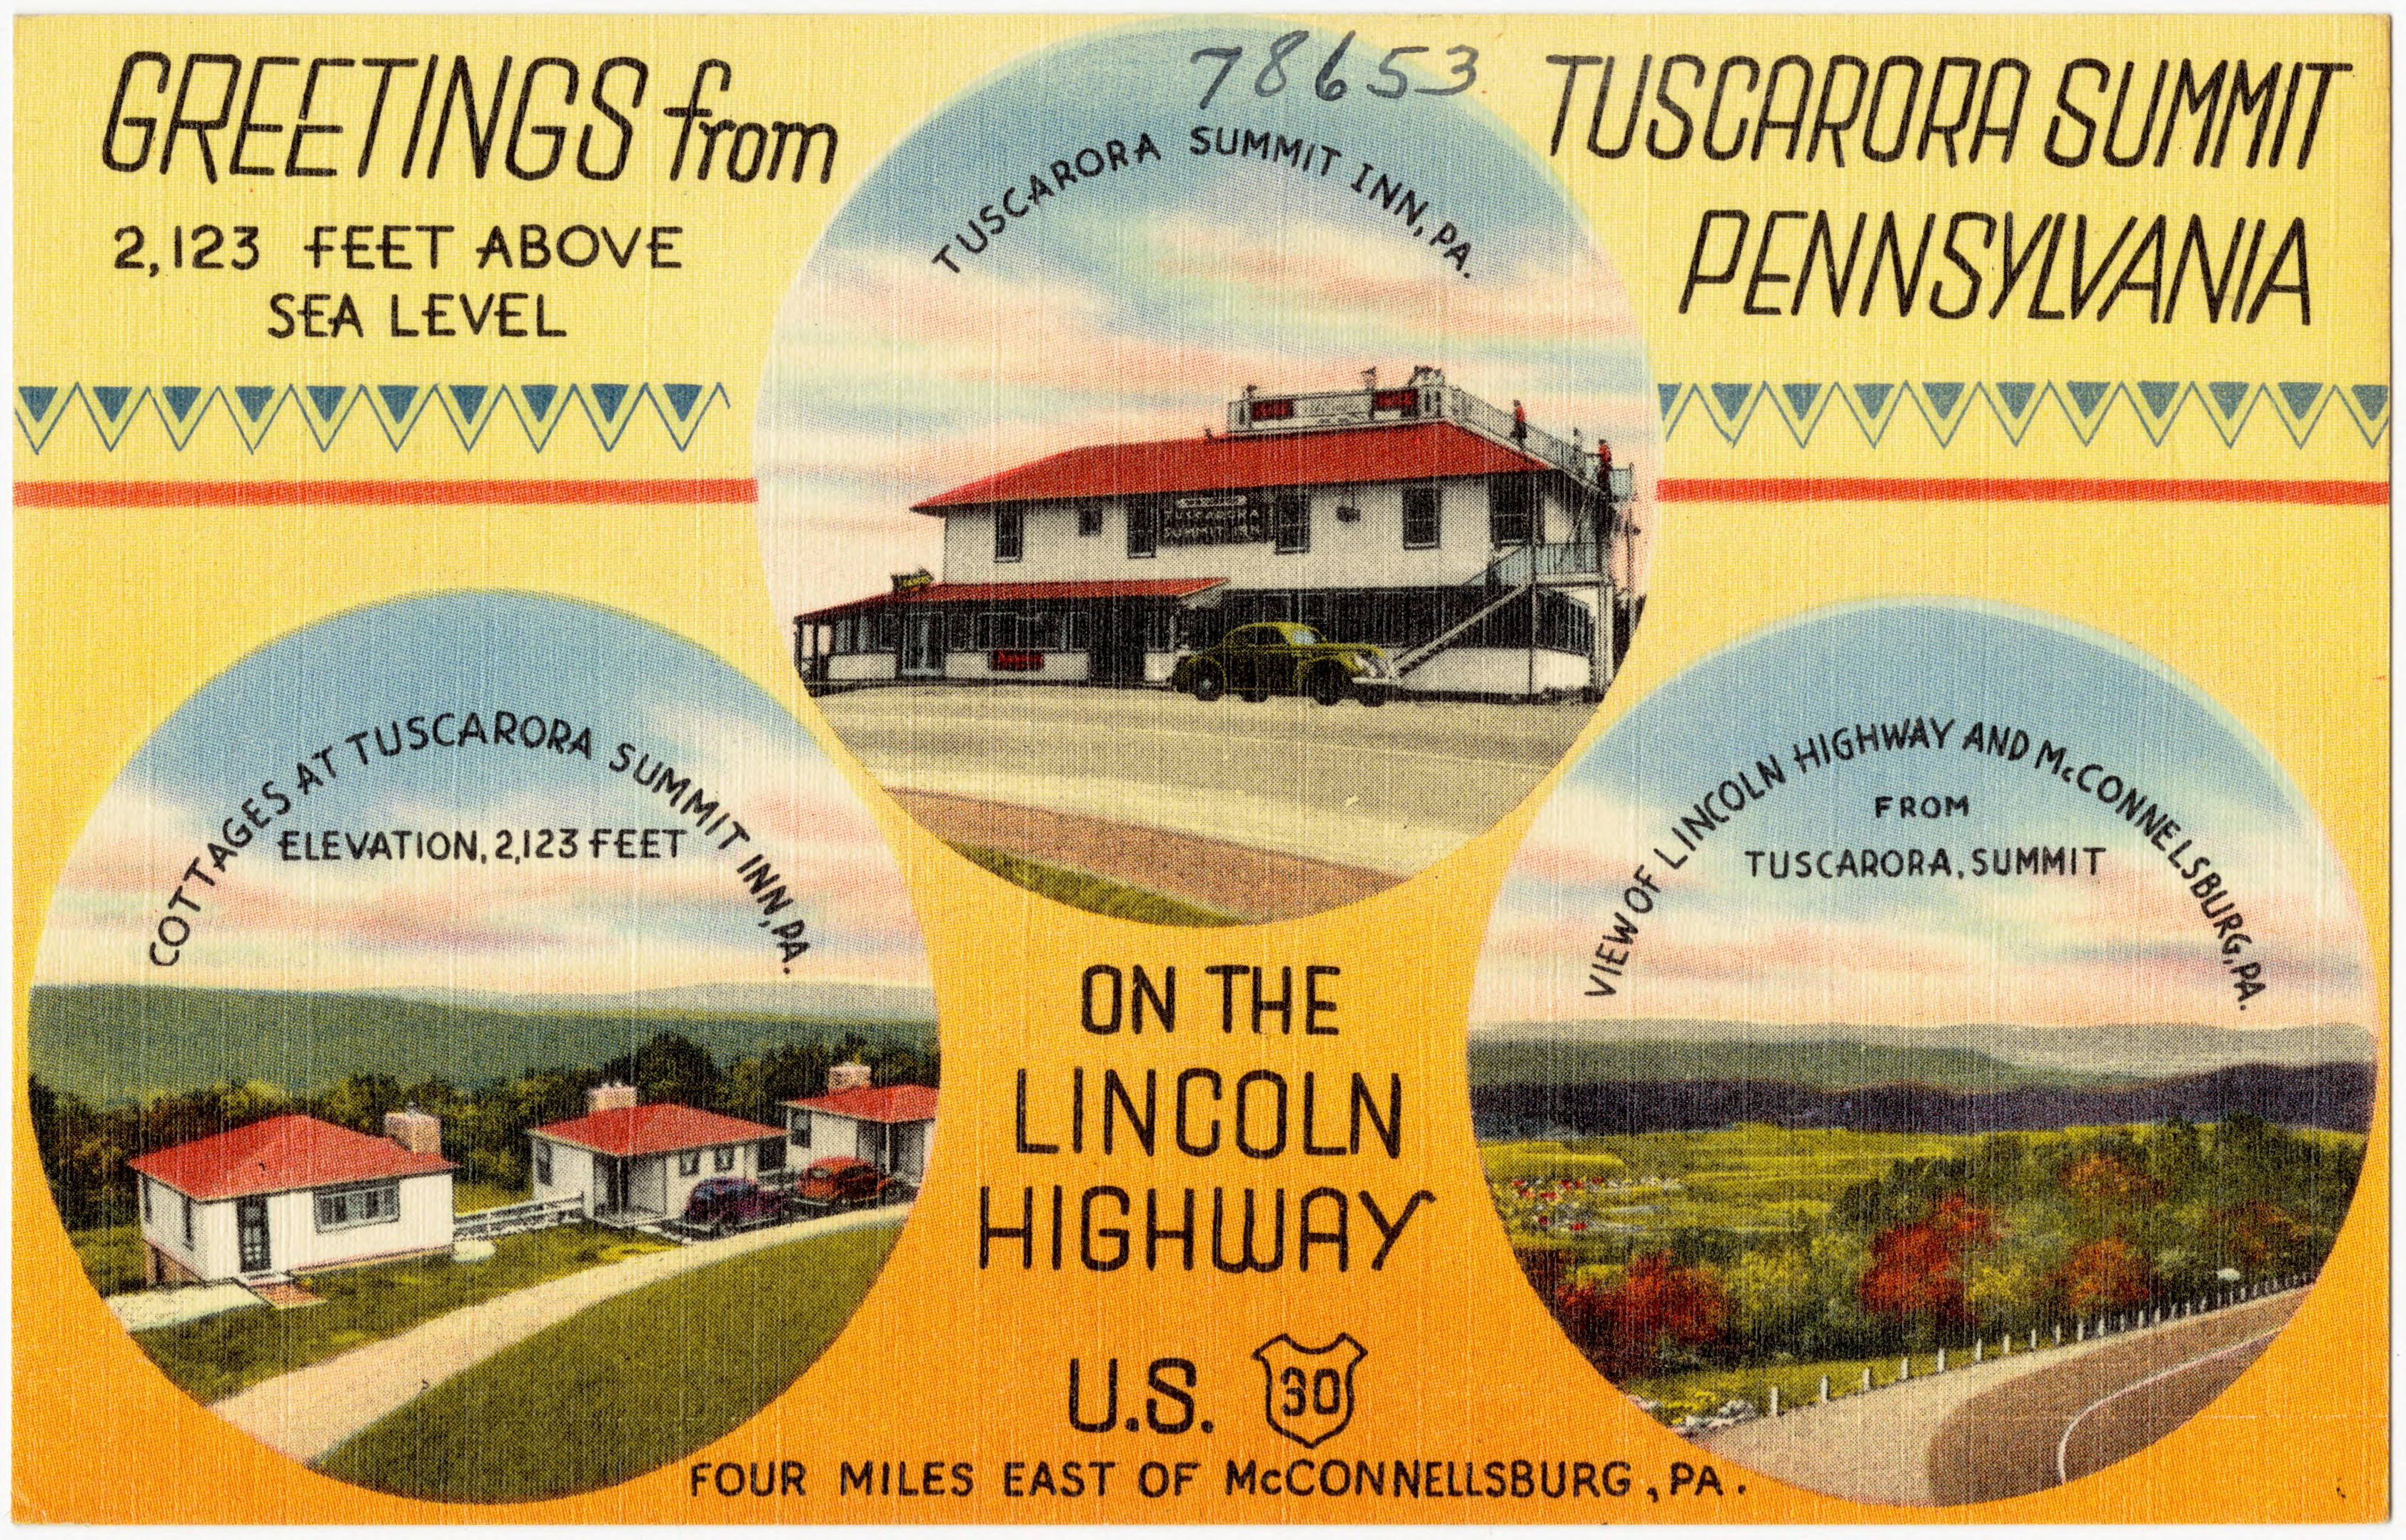 File:Greetings from Tuscarora Summit Pennsylvania, 2,123 feet above sea  level, on the